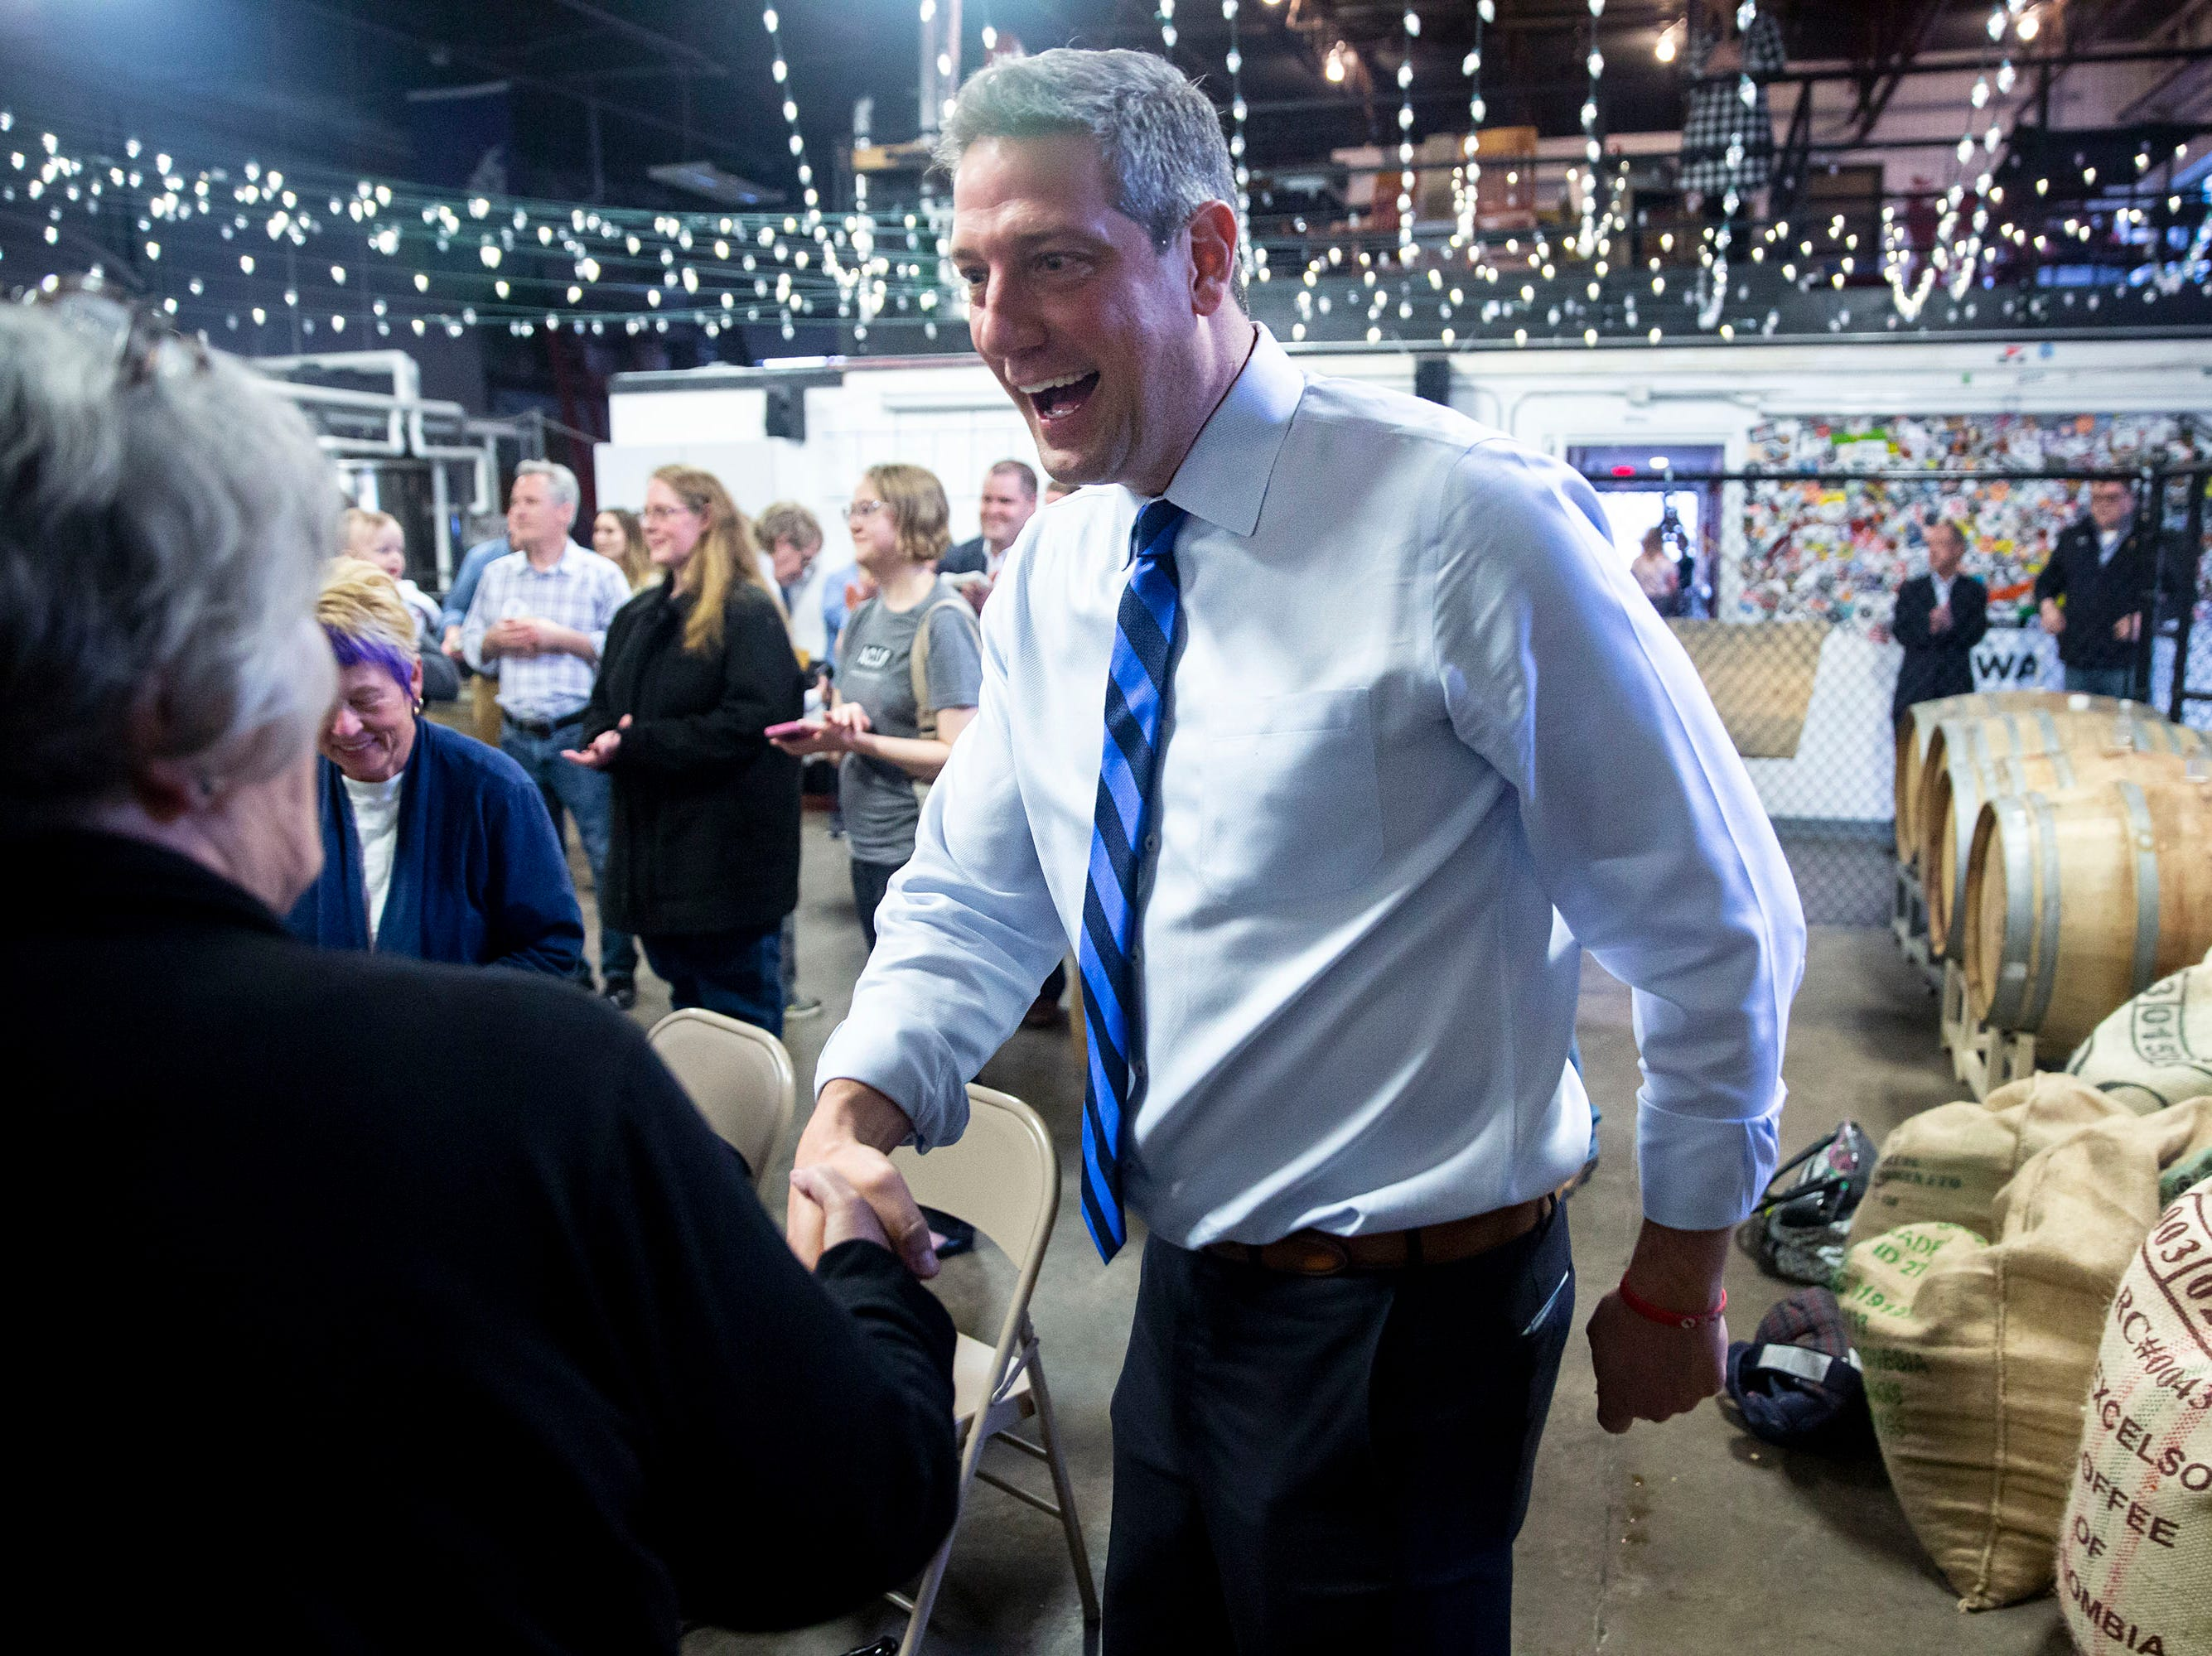 U.S. Rep. Tim Ryan, D-Ohio, shakes hands with people at a meet and greet event organized by the Polk County Democrats on Sunday, April 7, 2019, at Fox Brewing in West Des Moines. This is Ryan's first visit to Iowa after announcing he's running for president.